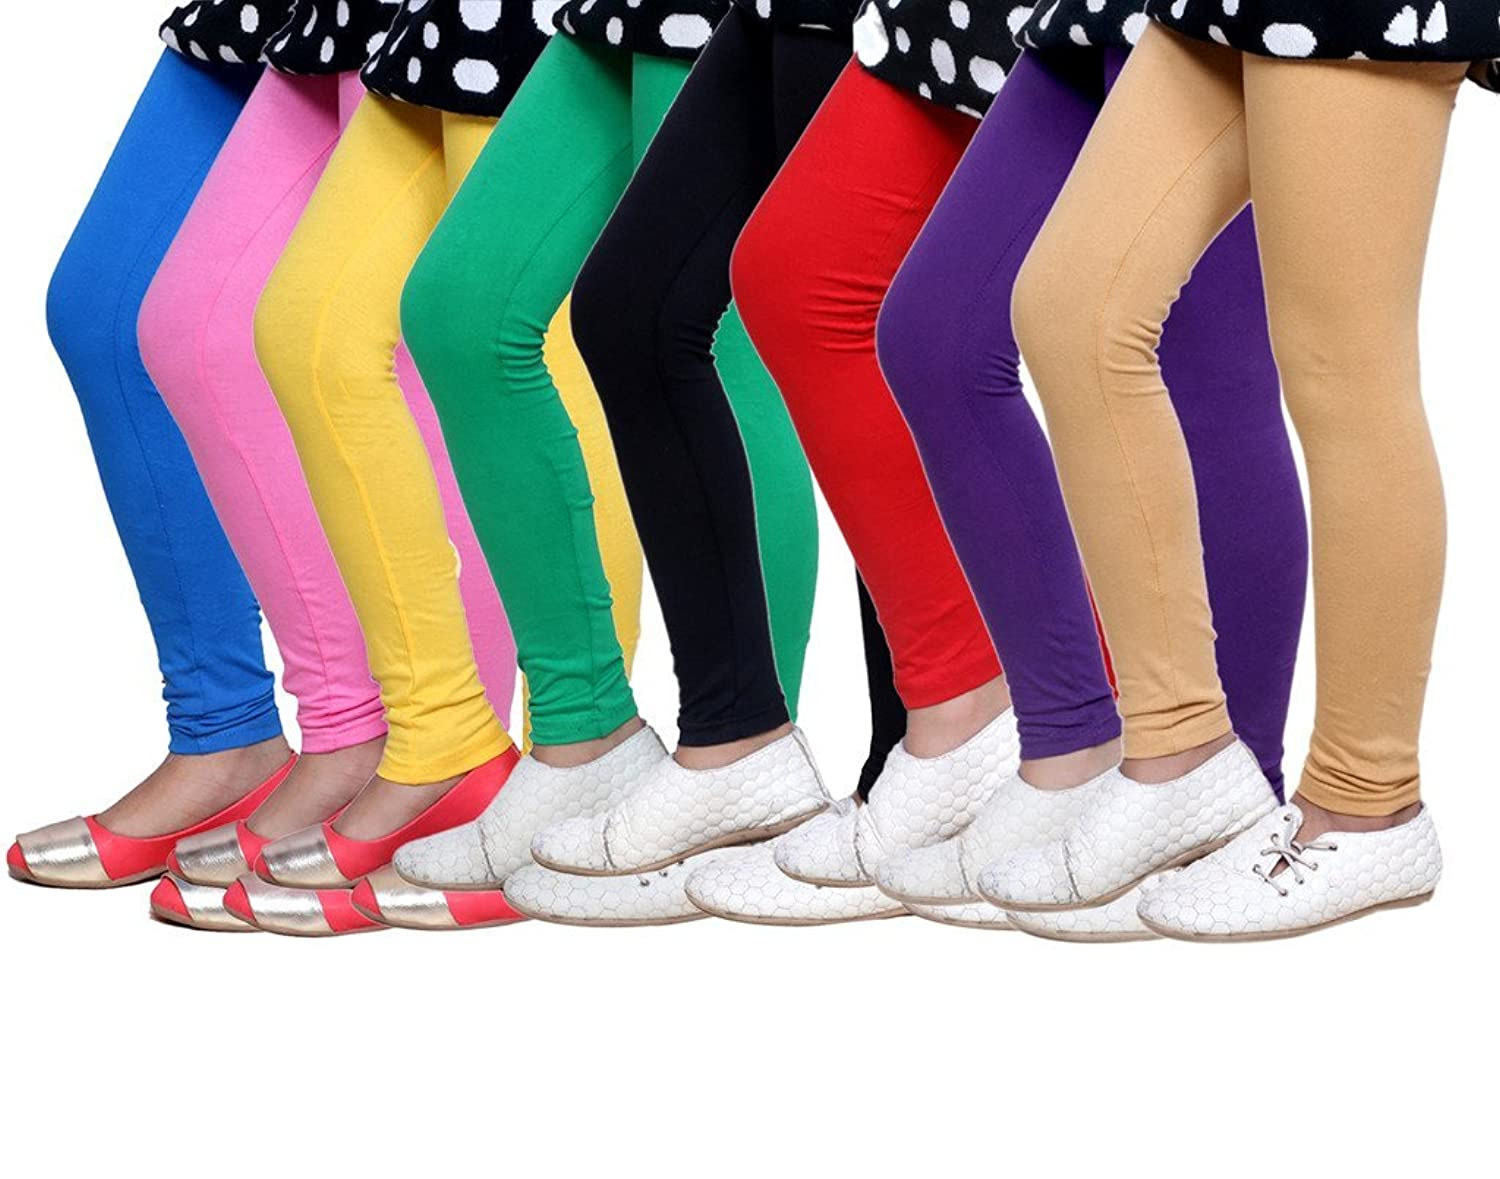 Pack of 5 -Multiple Colors-17-18 Years Indistar Big Girls Cotton Full Ankle Length Solid Leggings